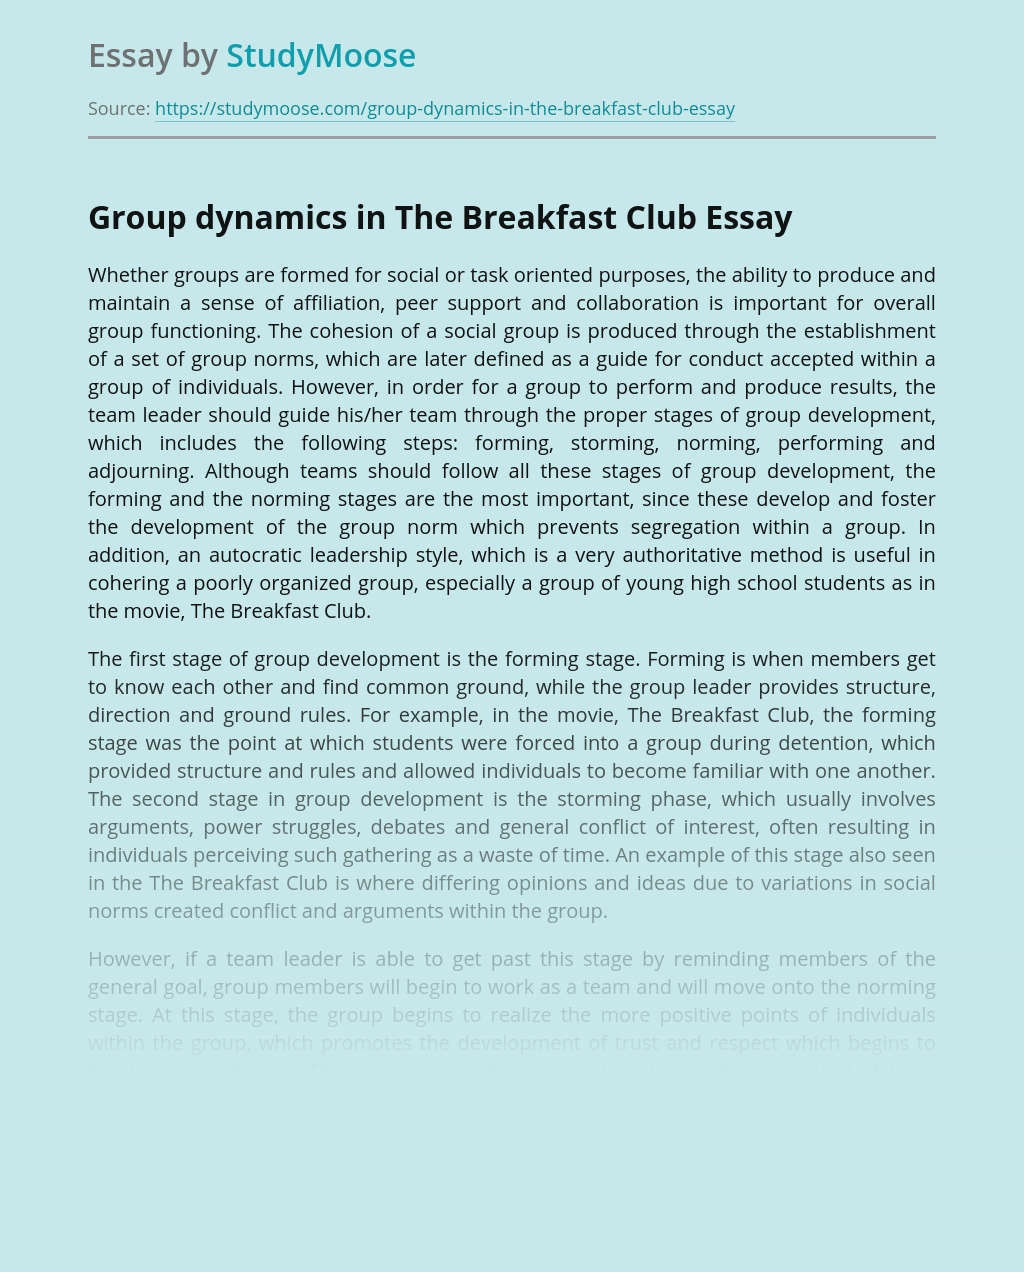 Group dynamics in The Breakfast Club